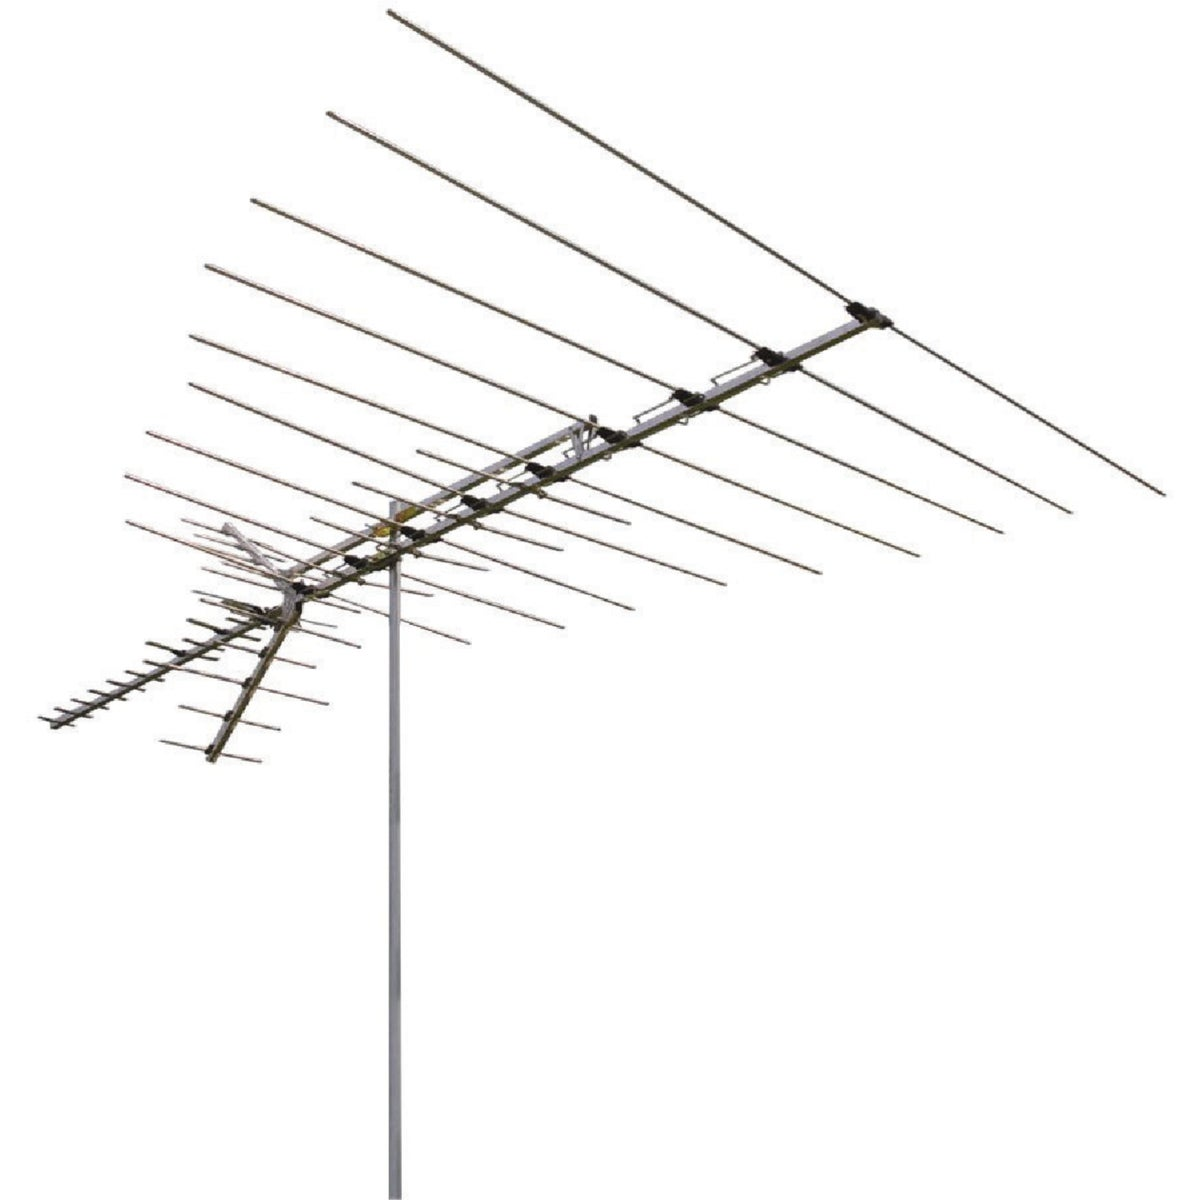 100 MILE OUTDOOR ANTENNA